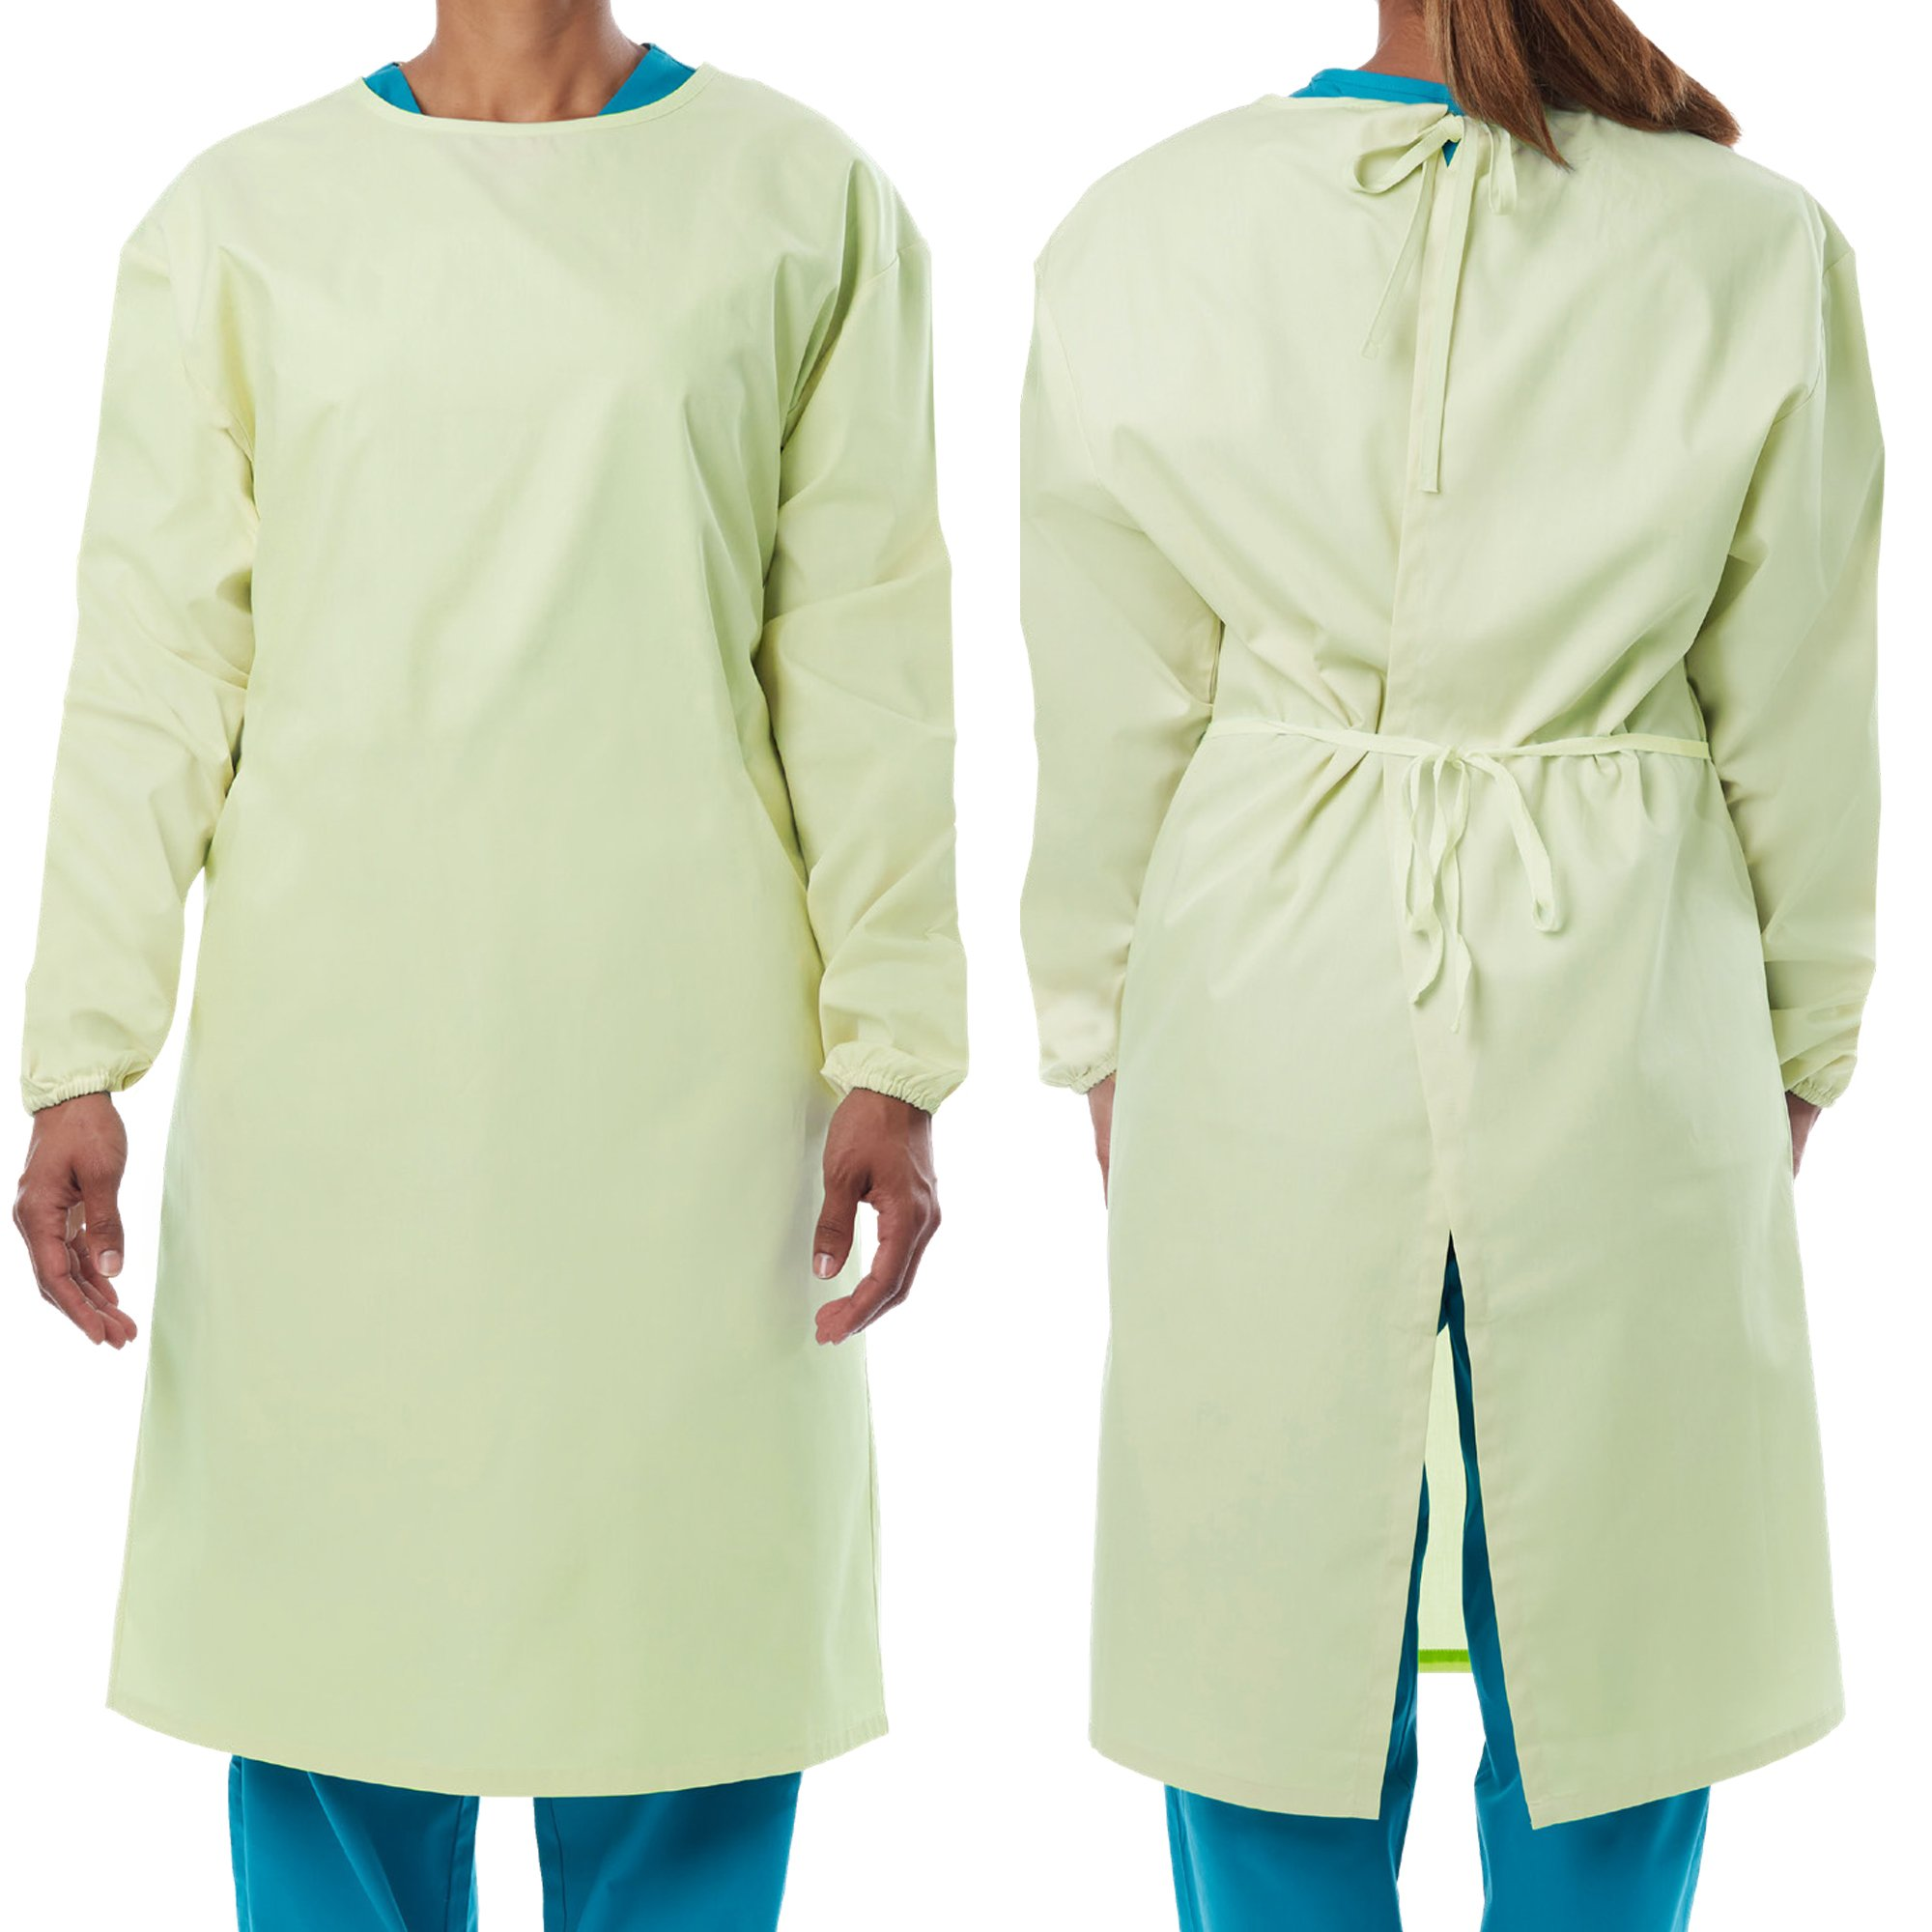 Picture of Protective Procedure Gown Small / Medium Yellow NonSterile AAMI Level 1 Reusable, 50 per Case